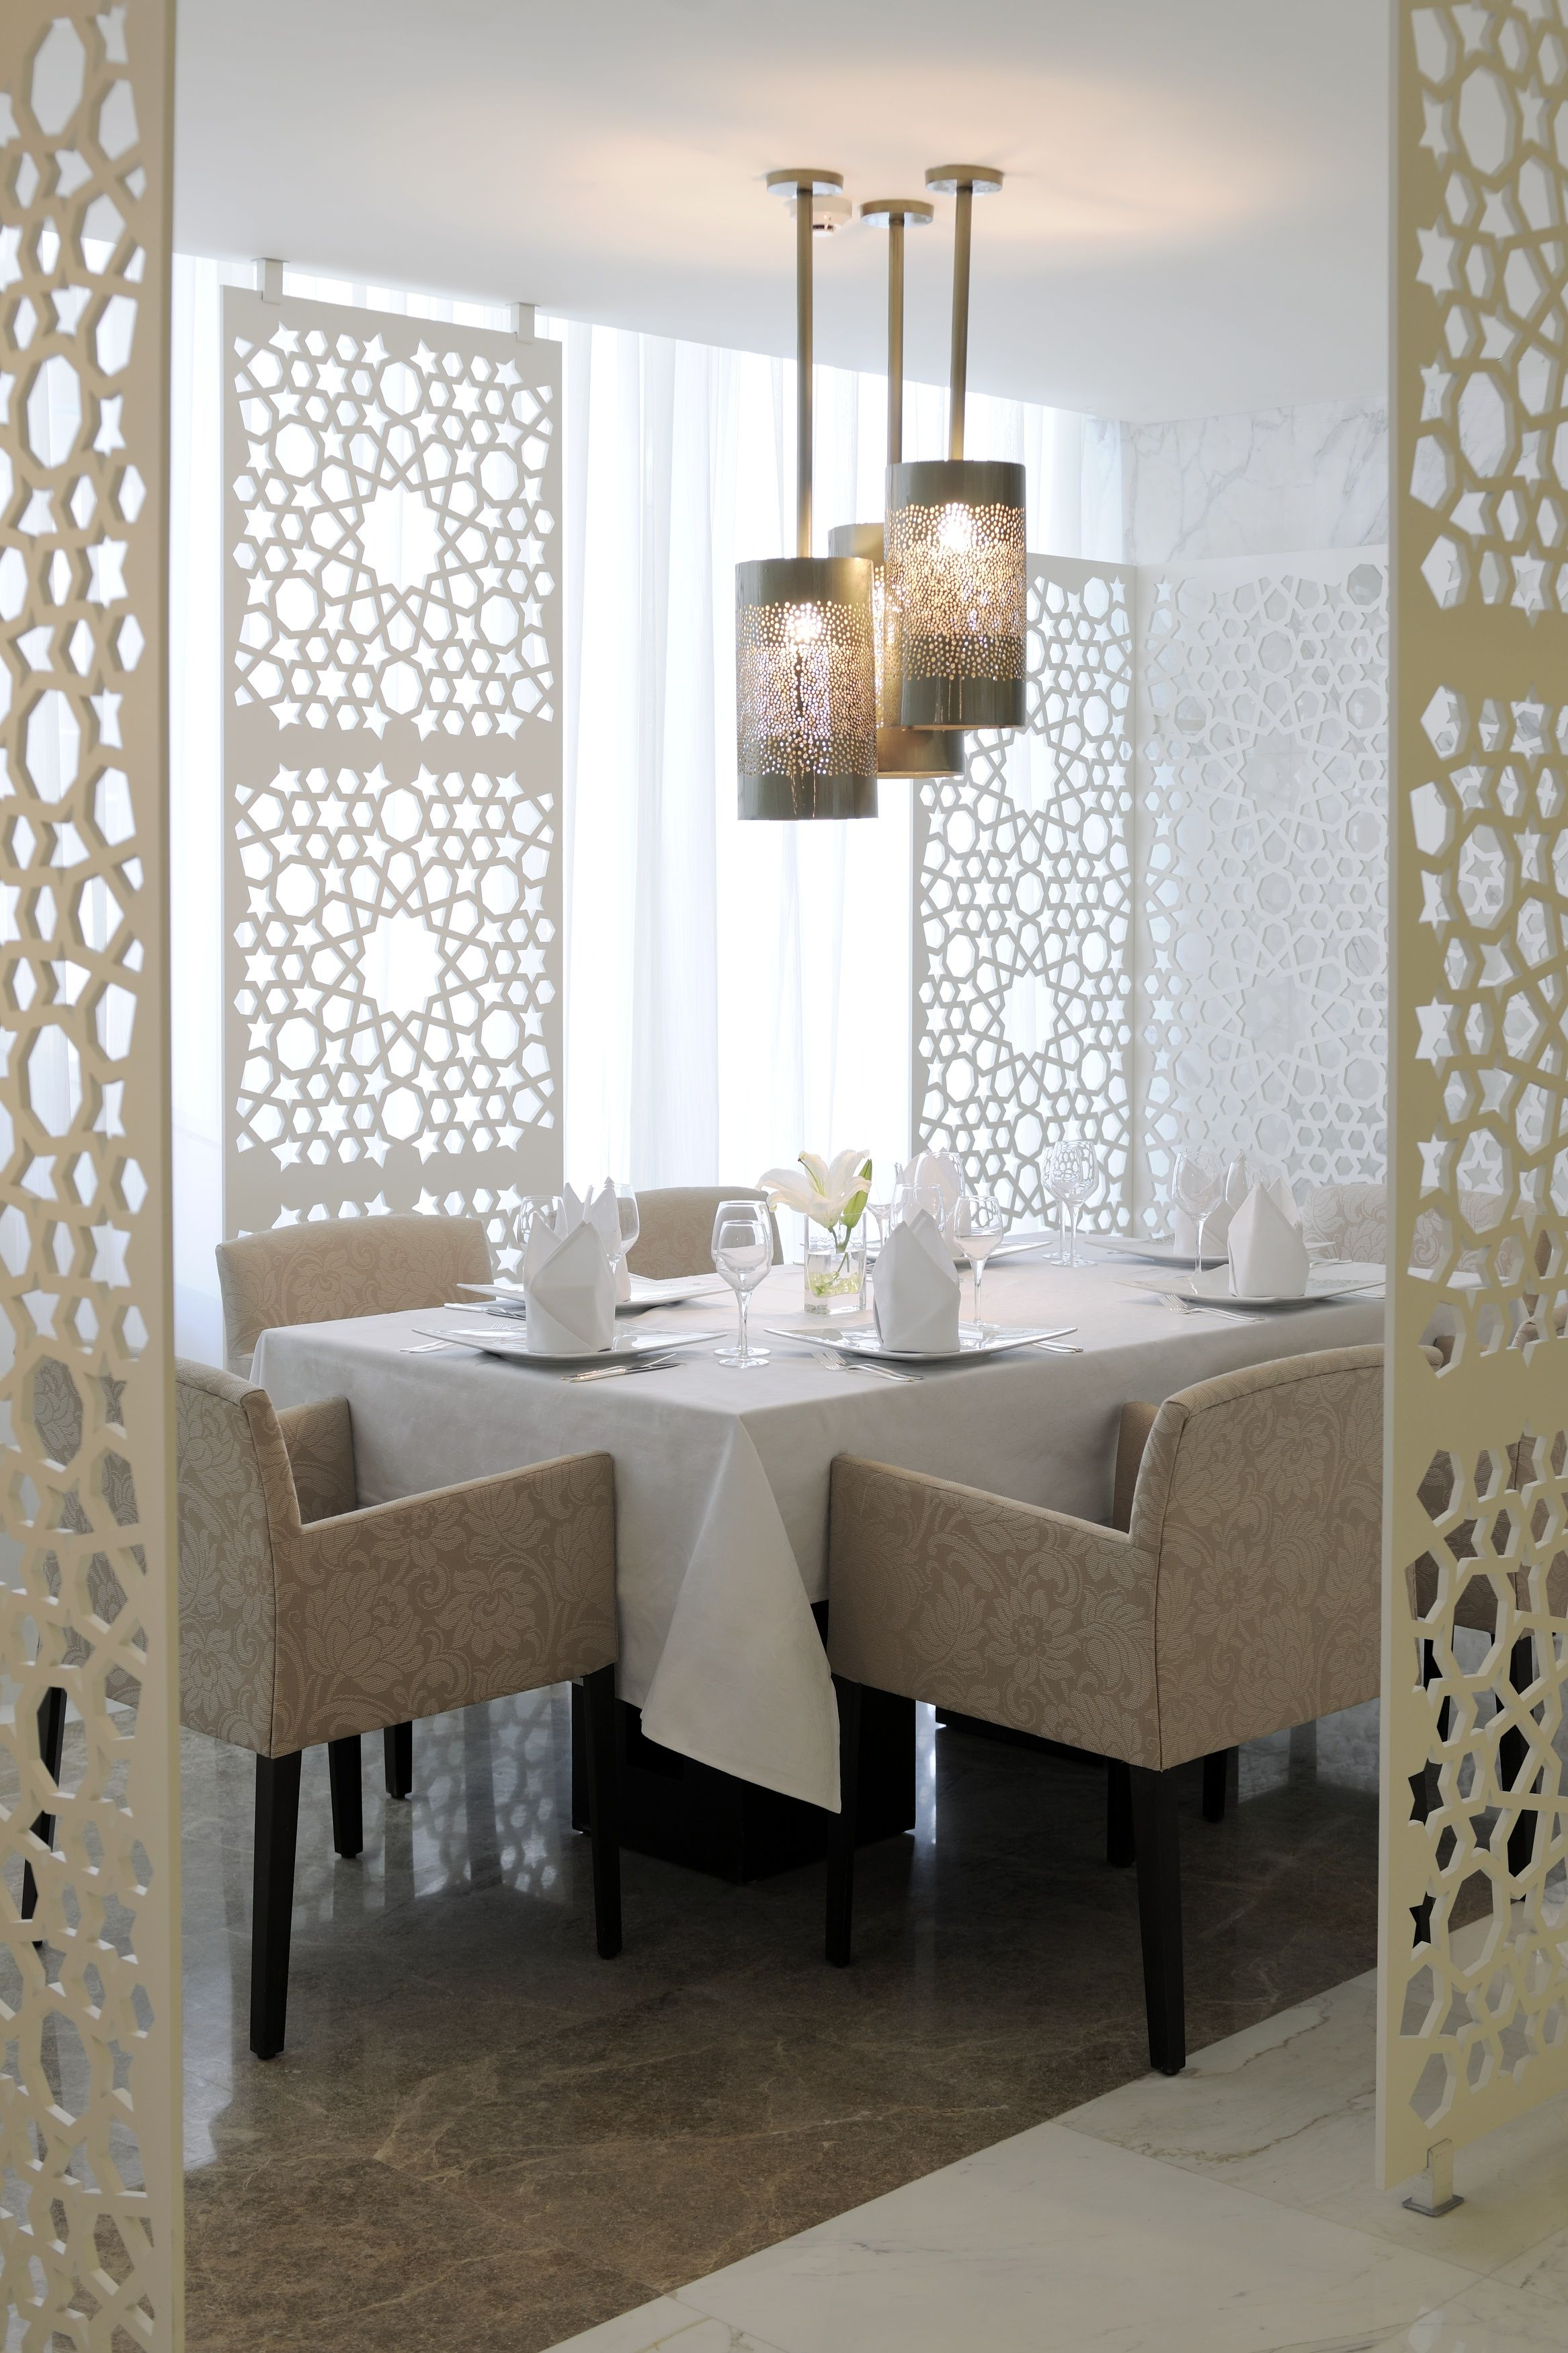 Arabic Restaurant Serving Gulf Food Concept And Design By DLG